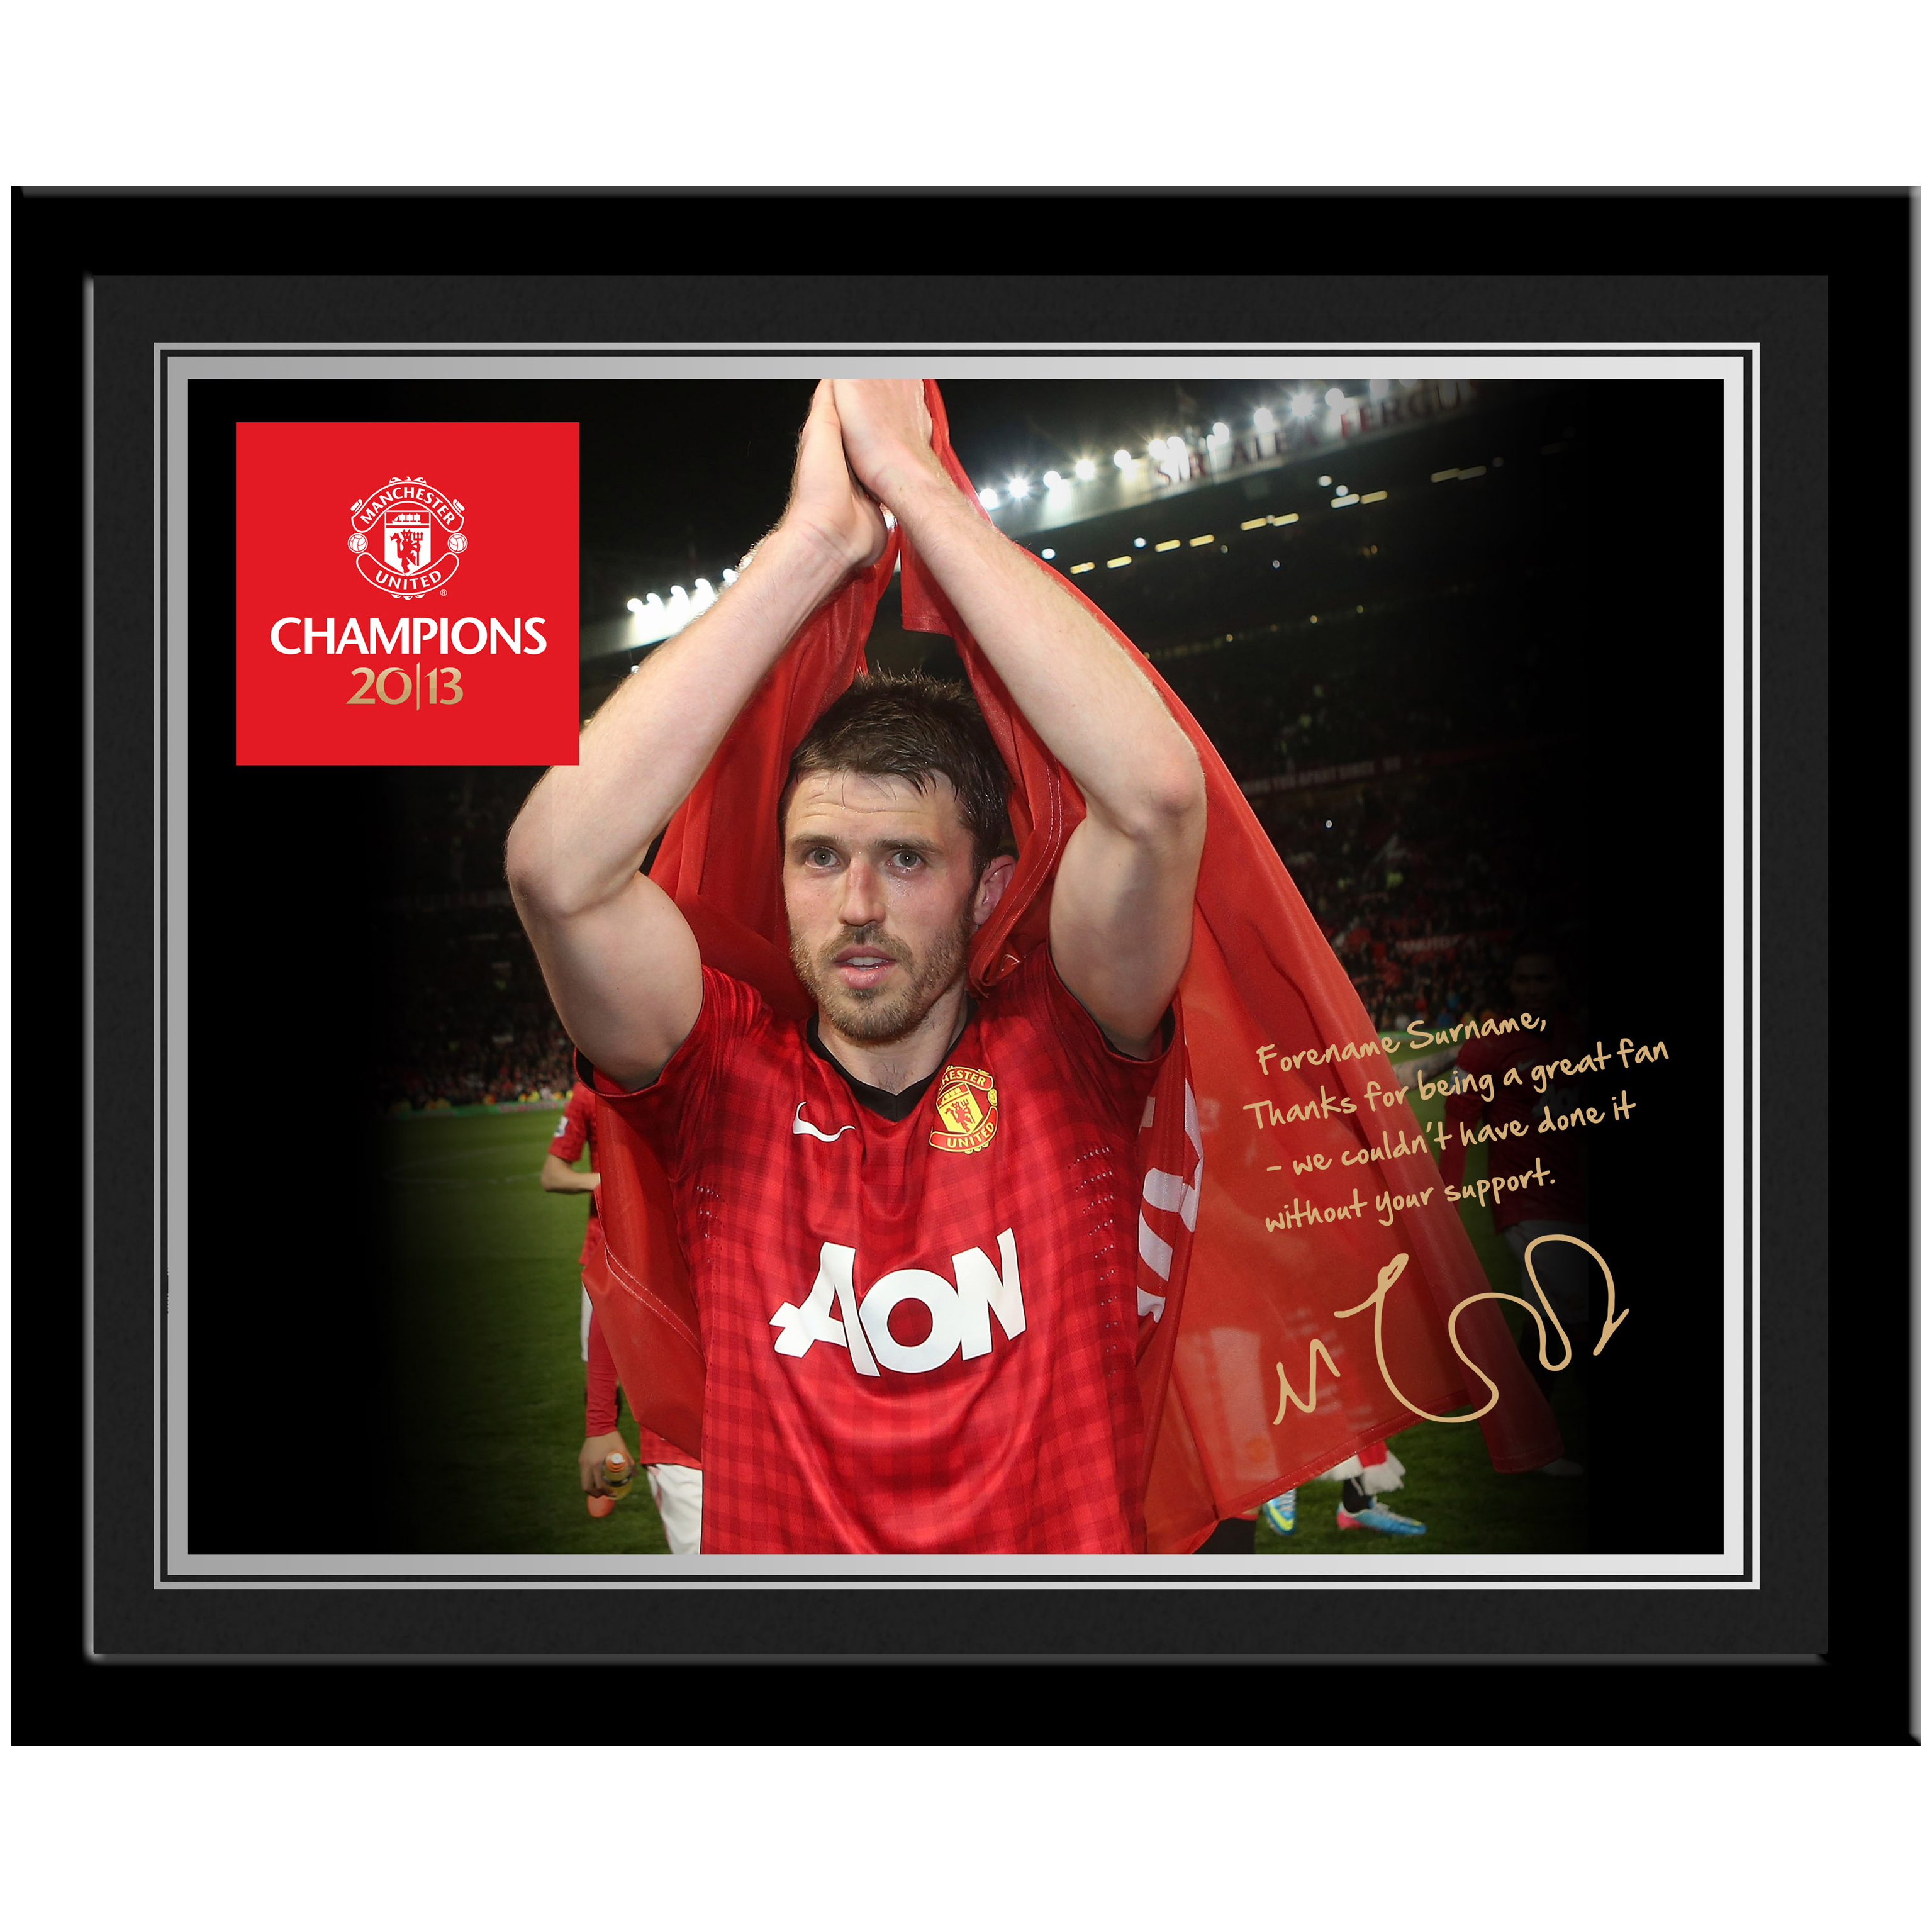 Manchester United Personalised Champions 2013 Player Photo Framed - Carrick